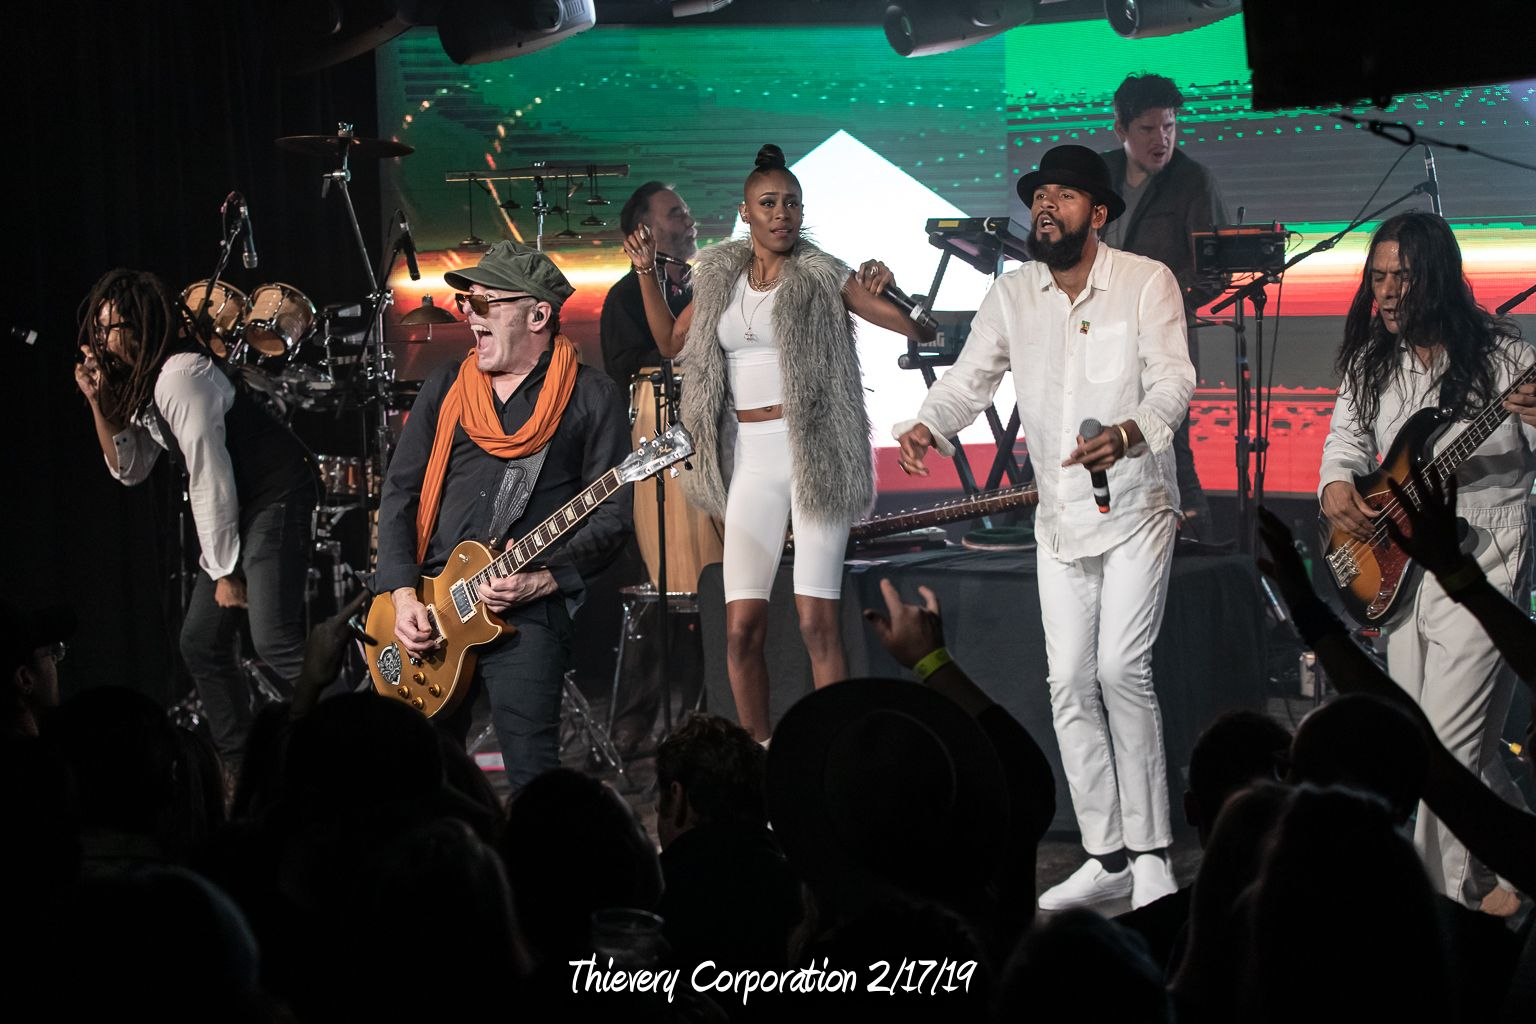 Thievery Corporation 2/17/19